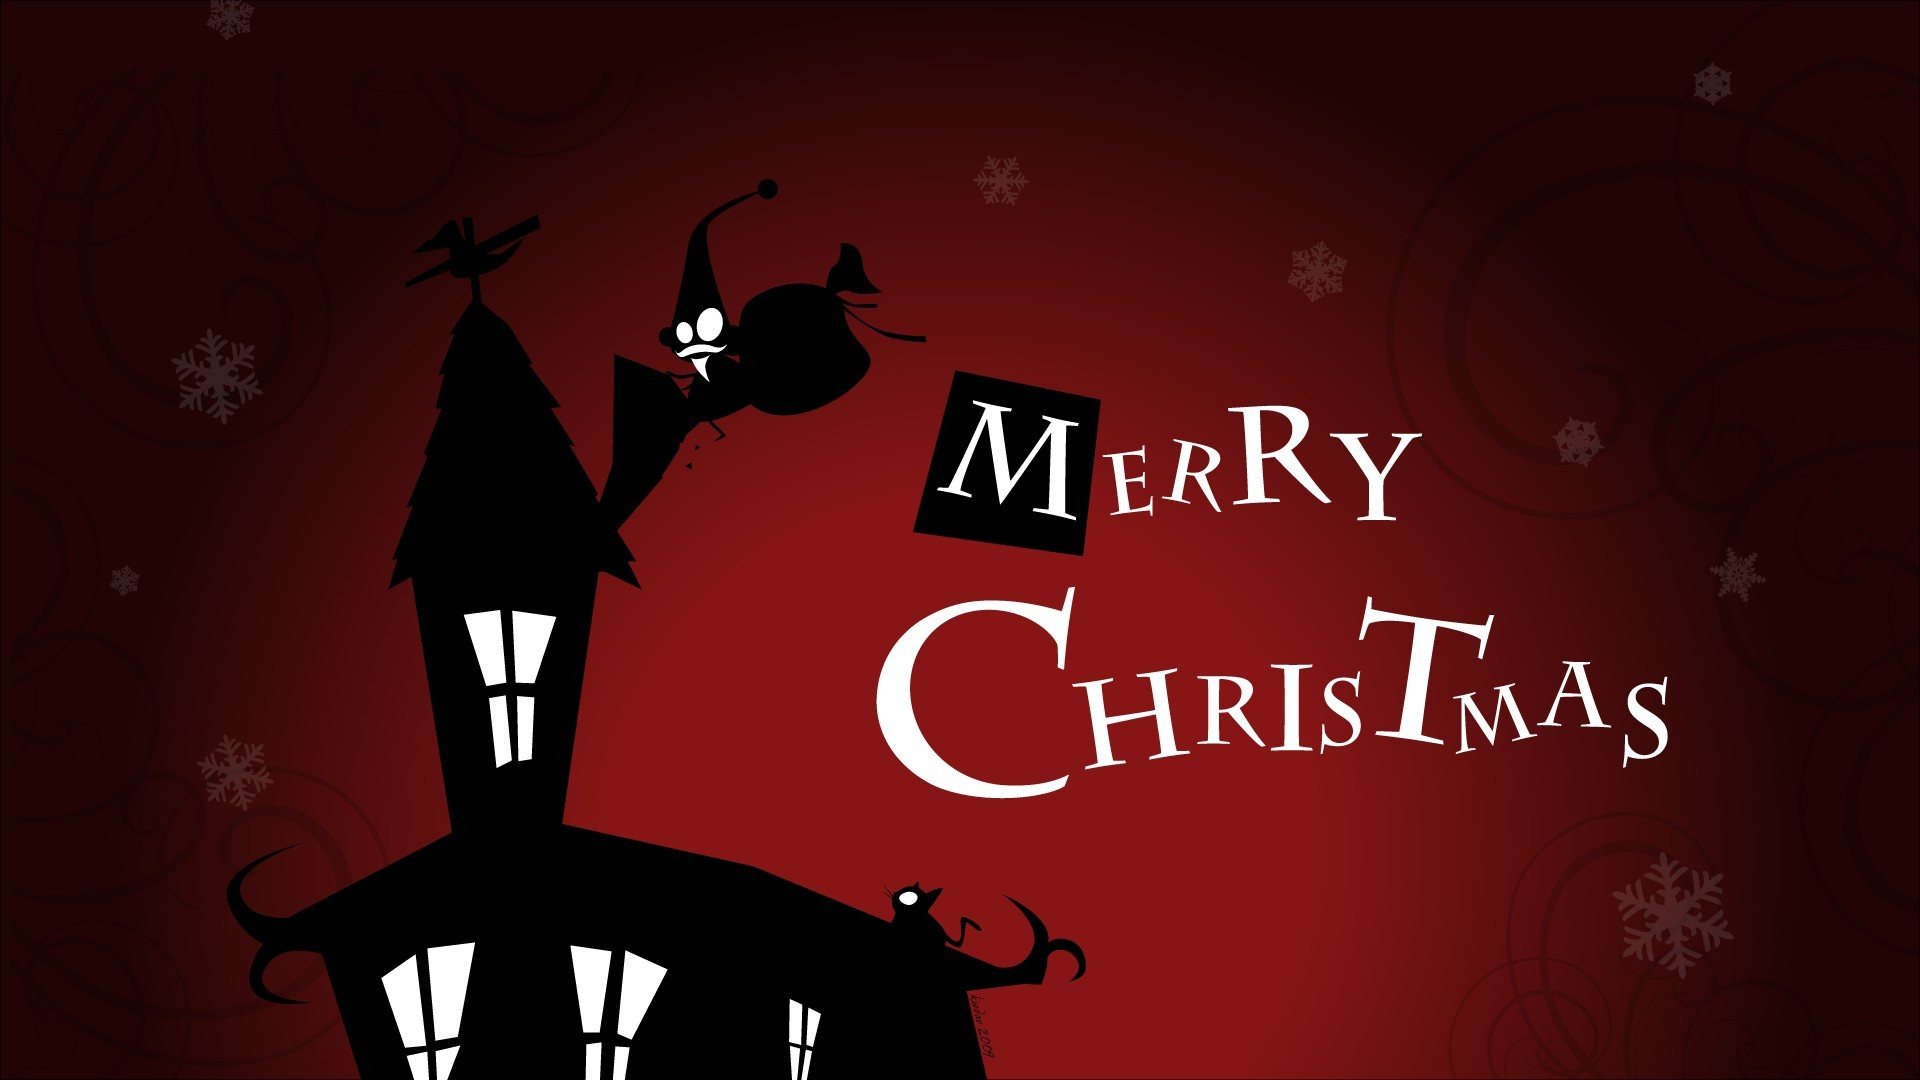 1920x1080 Merry Christmas Cartoon Images HD Wallpapers